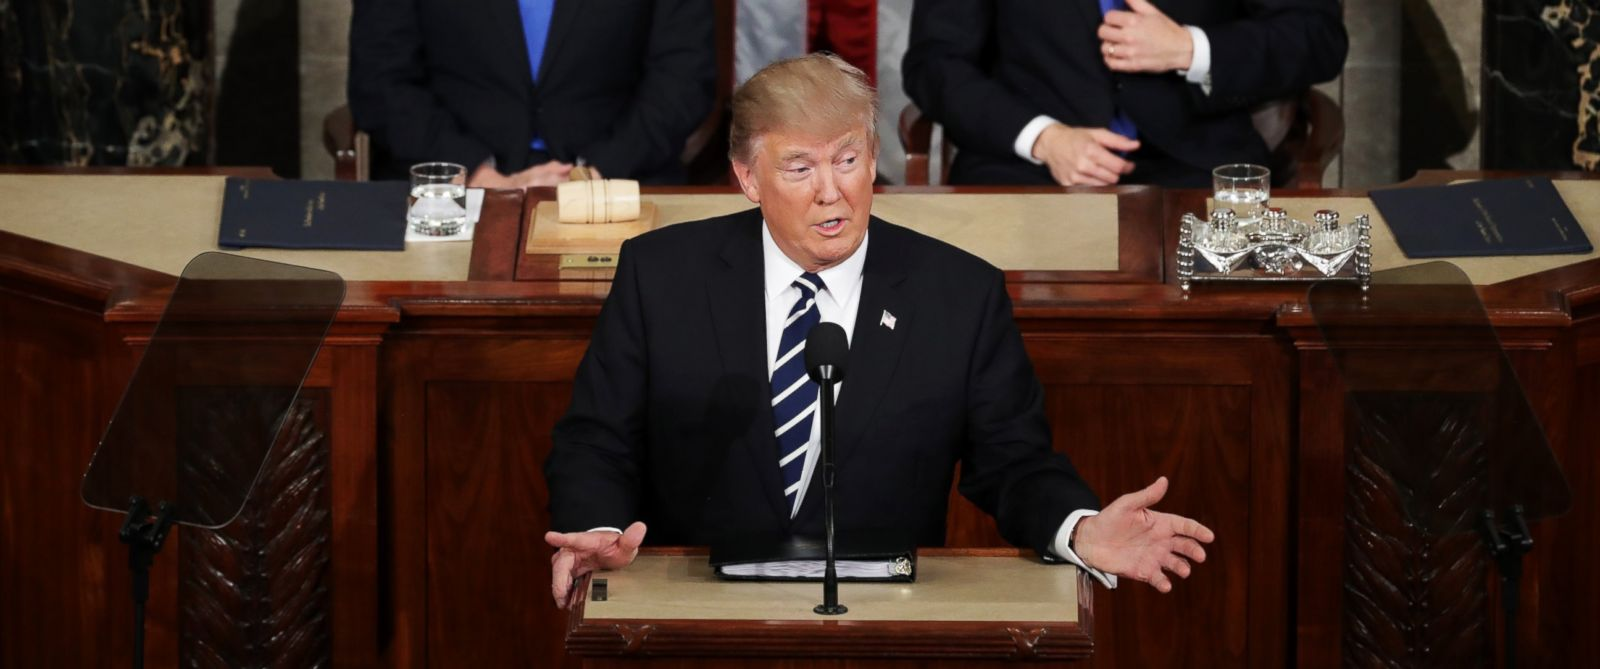 Image result for president donald trump address joint session of the us congress